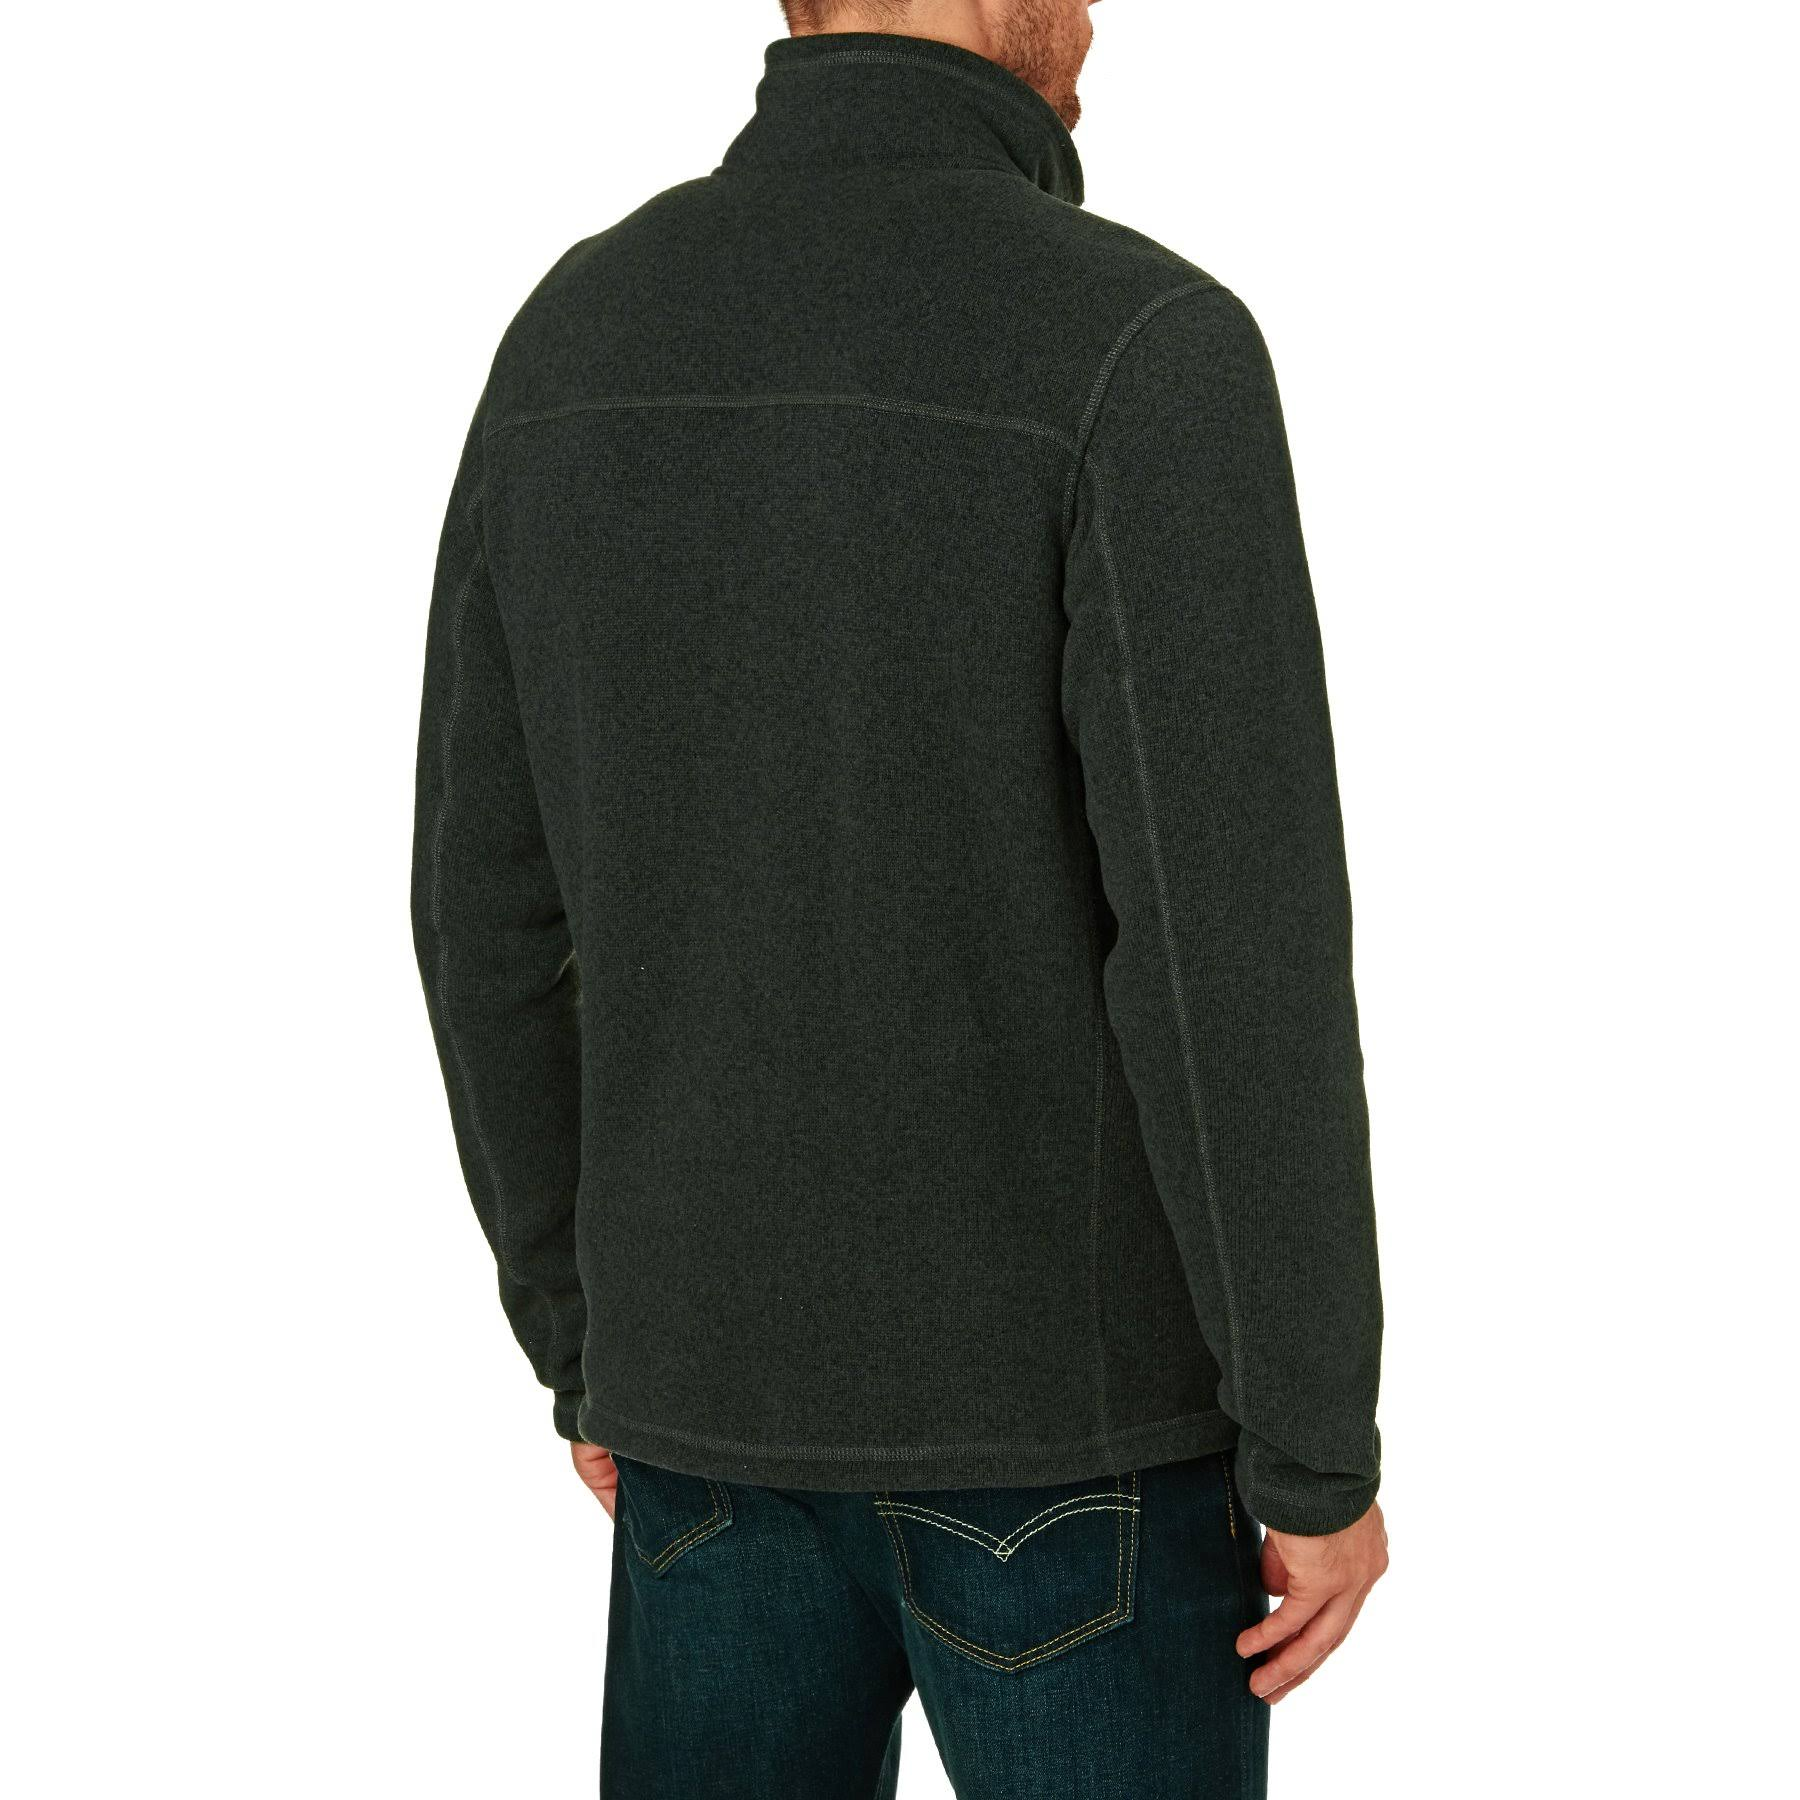 North The Heather Gris Fleece Zip Oscuro Gordon Hombre Lyons Face 14 rrv8dw